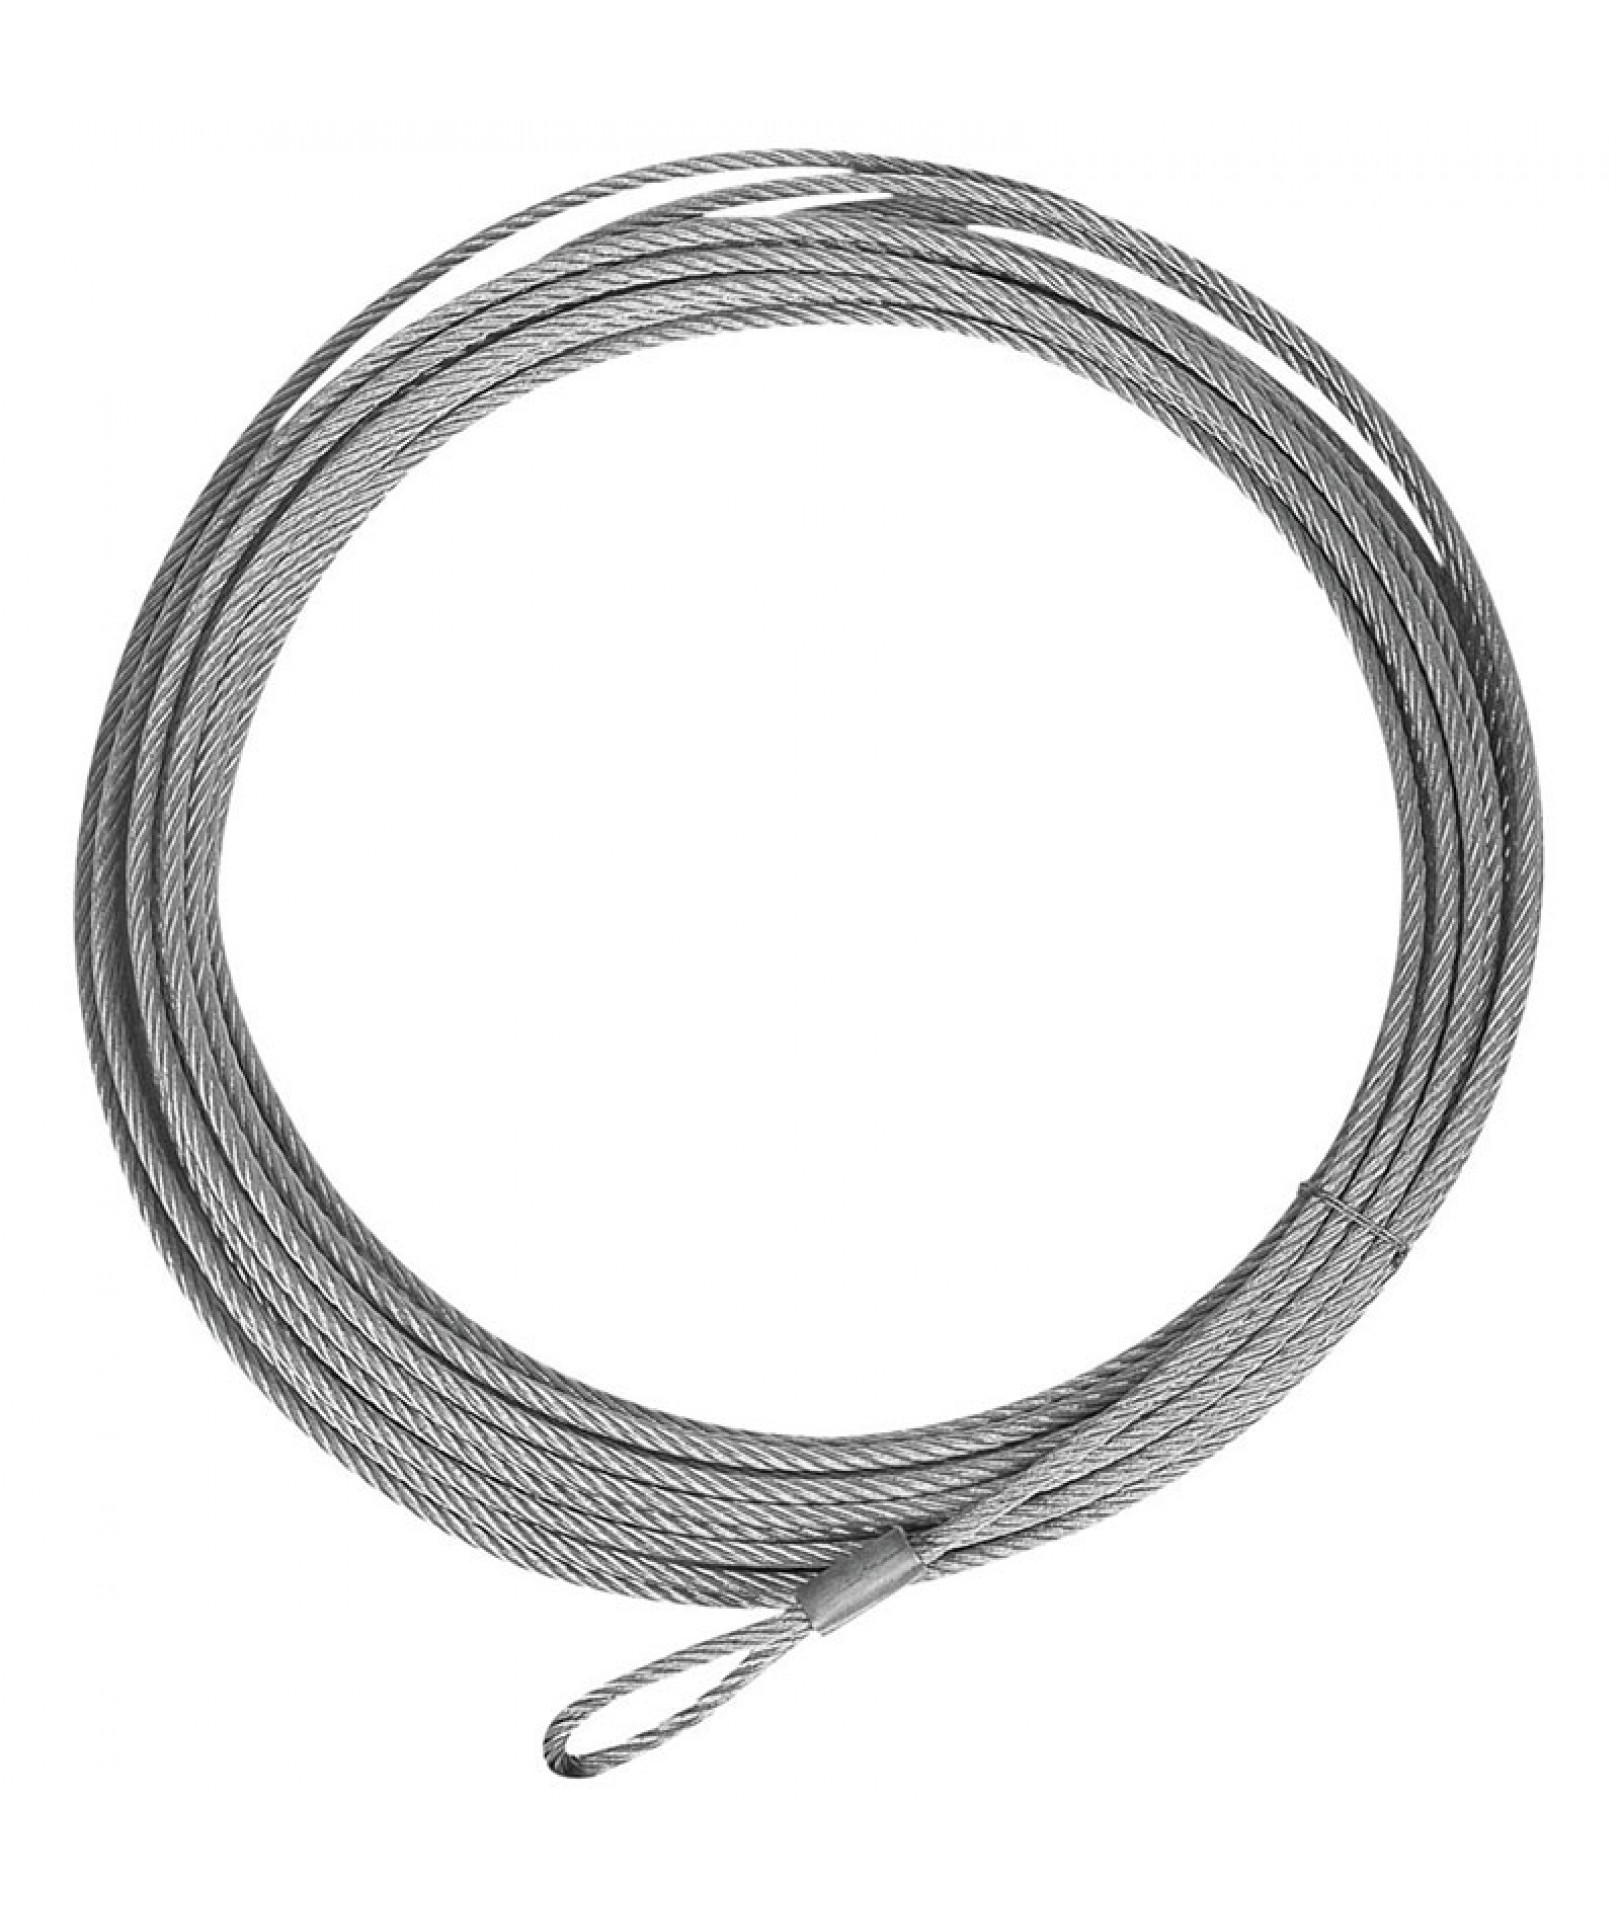 winch replacement parts wire cable 39 x 3 16 2500 lb winch Winch Cable Rollers qb wire cable 39 x 3 16 2500 lb